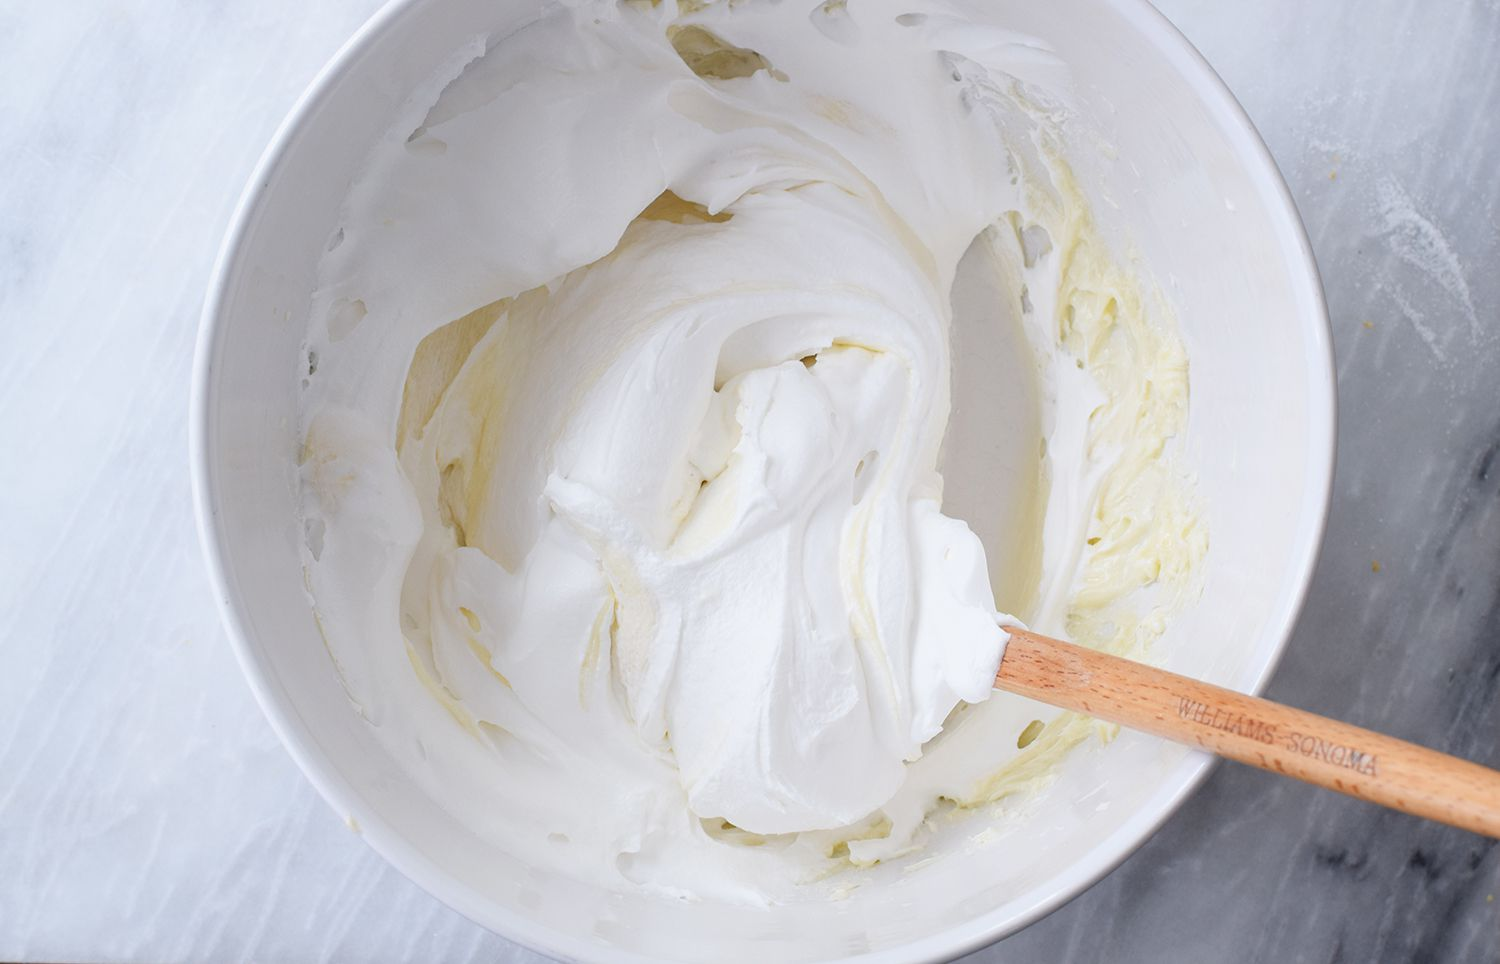 Whipped cream folded into cream cheese